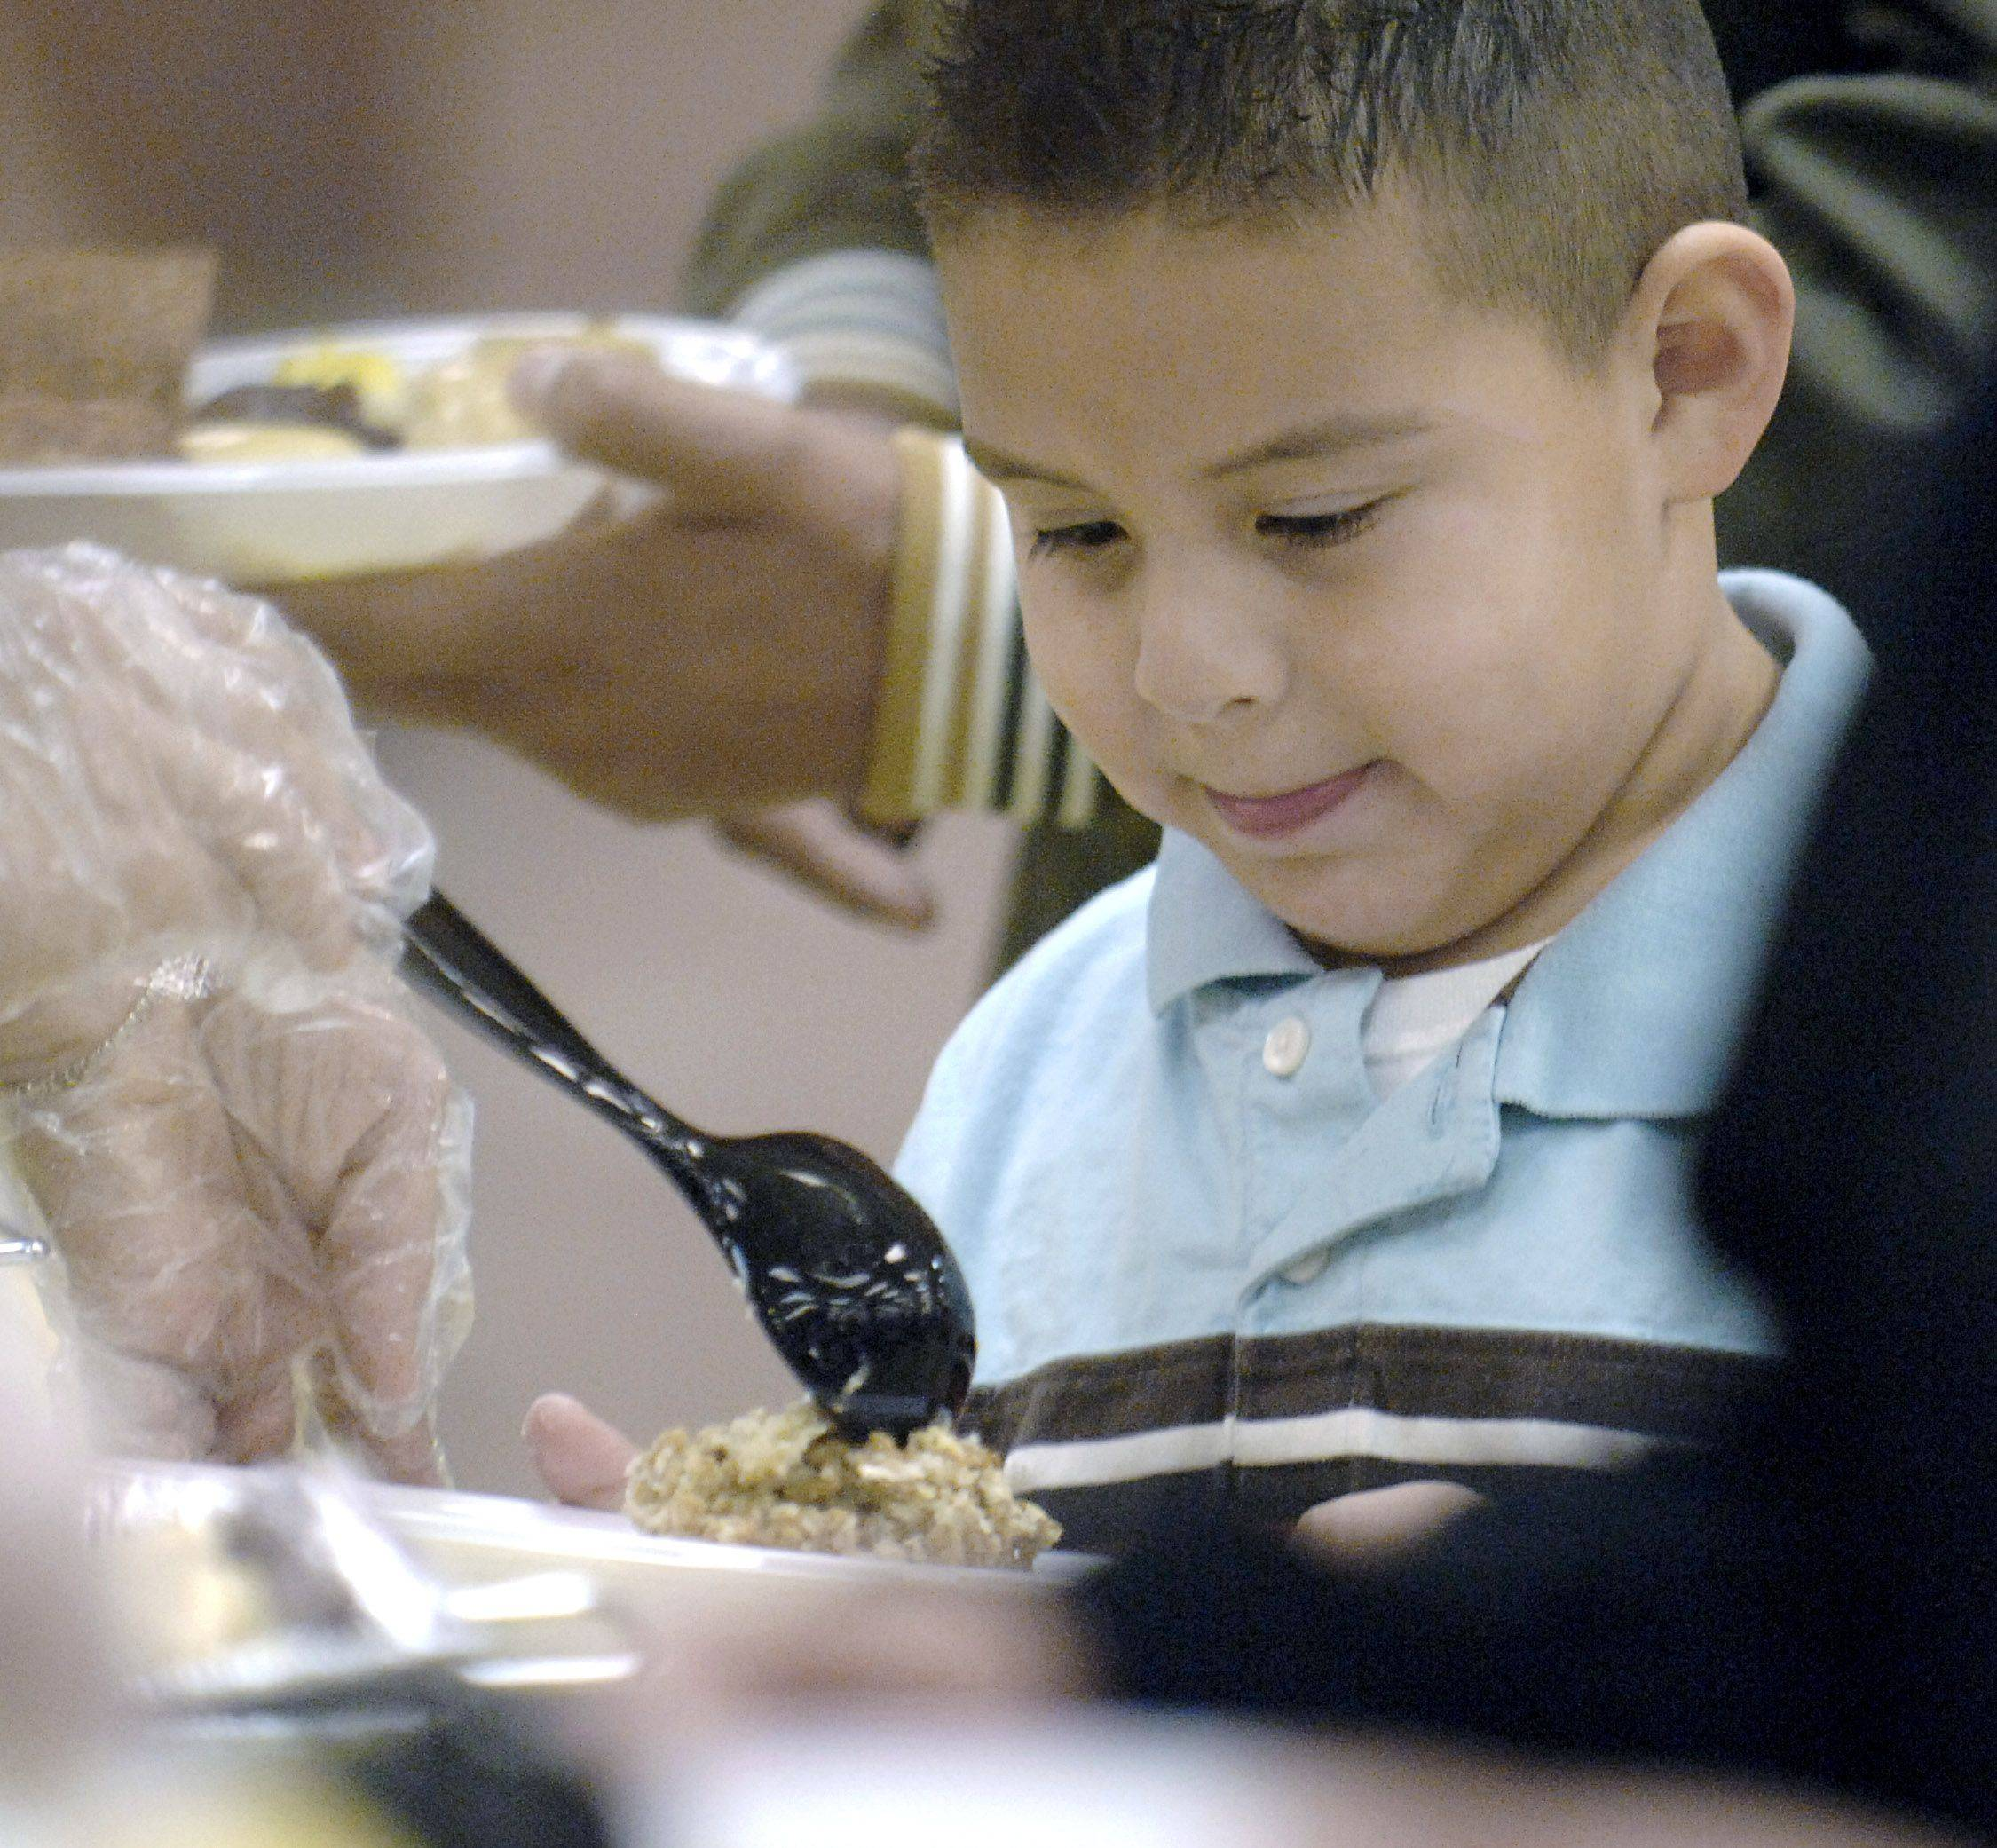 David Naranjo, 5, of Elgin gets a load of stuffing on his plate at the community Thanksgiving dinner at the Hemmens Cultural Center in Elgin on Thanksgiving Day. He preferred the side dishes and skipped the turkey.